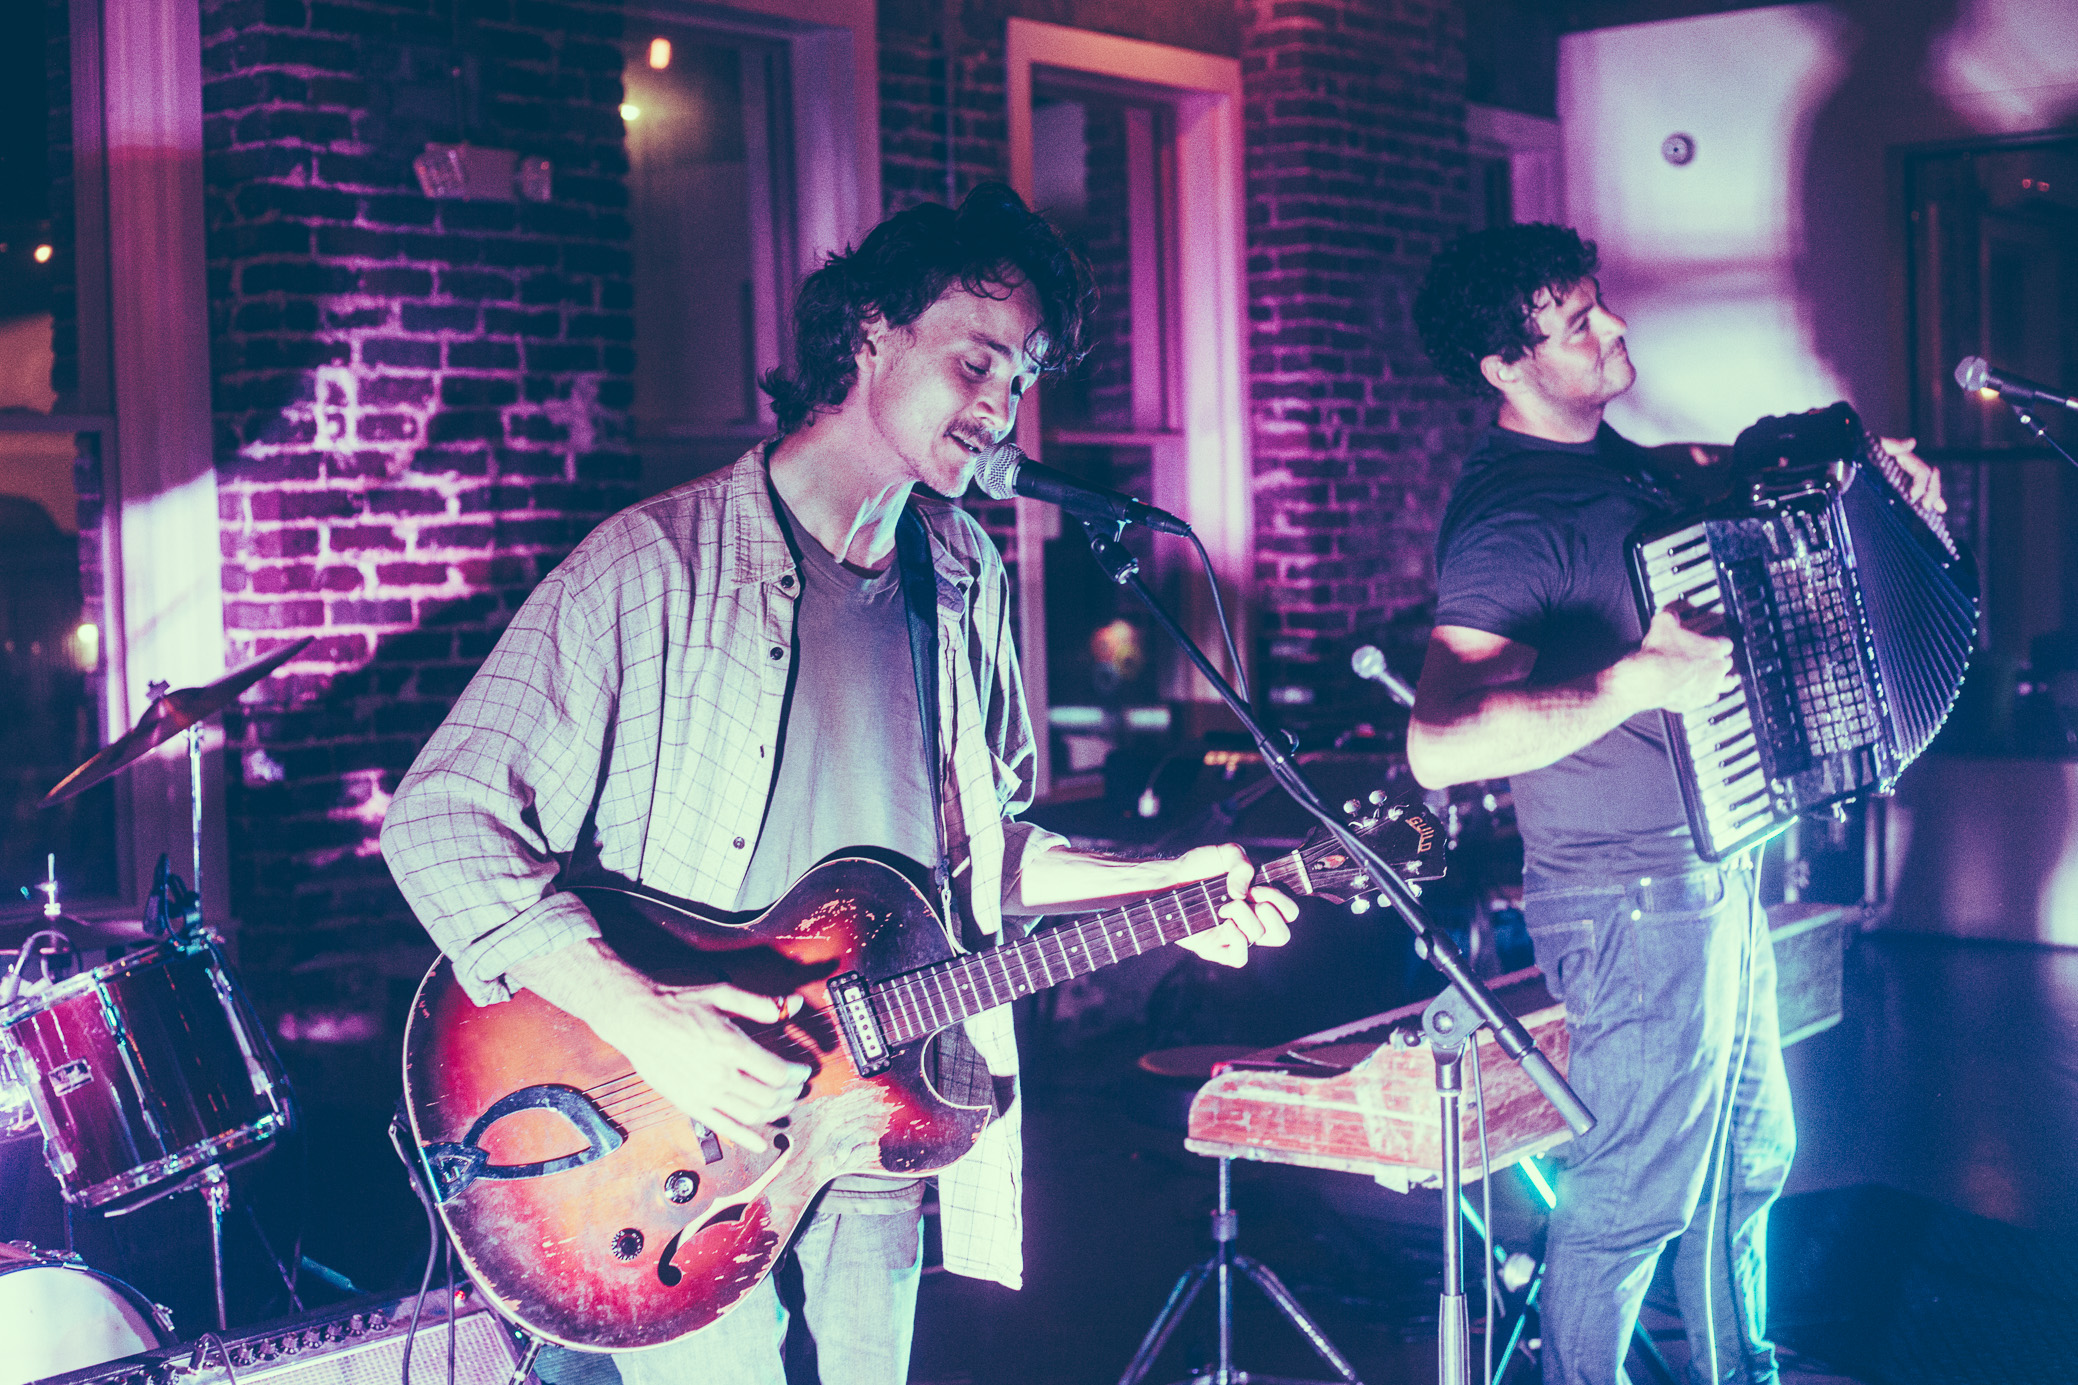 The Felice Brothers perform in concert at The Upstairs at Avondale in Birmingham, Alabama on June 9th, 2019. (Photo by David A. Smith / DSmithScenes)